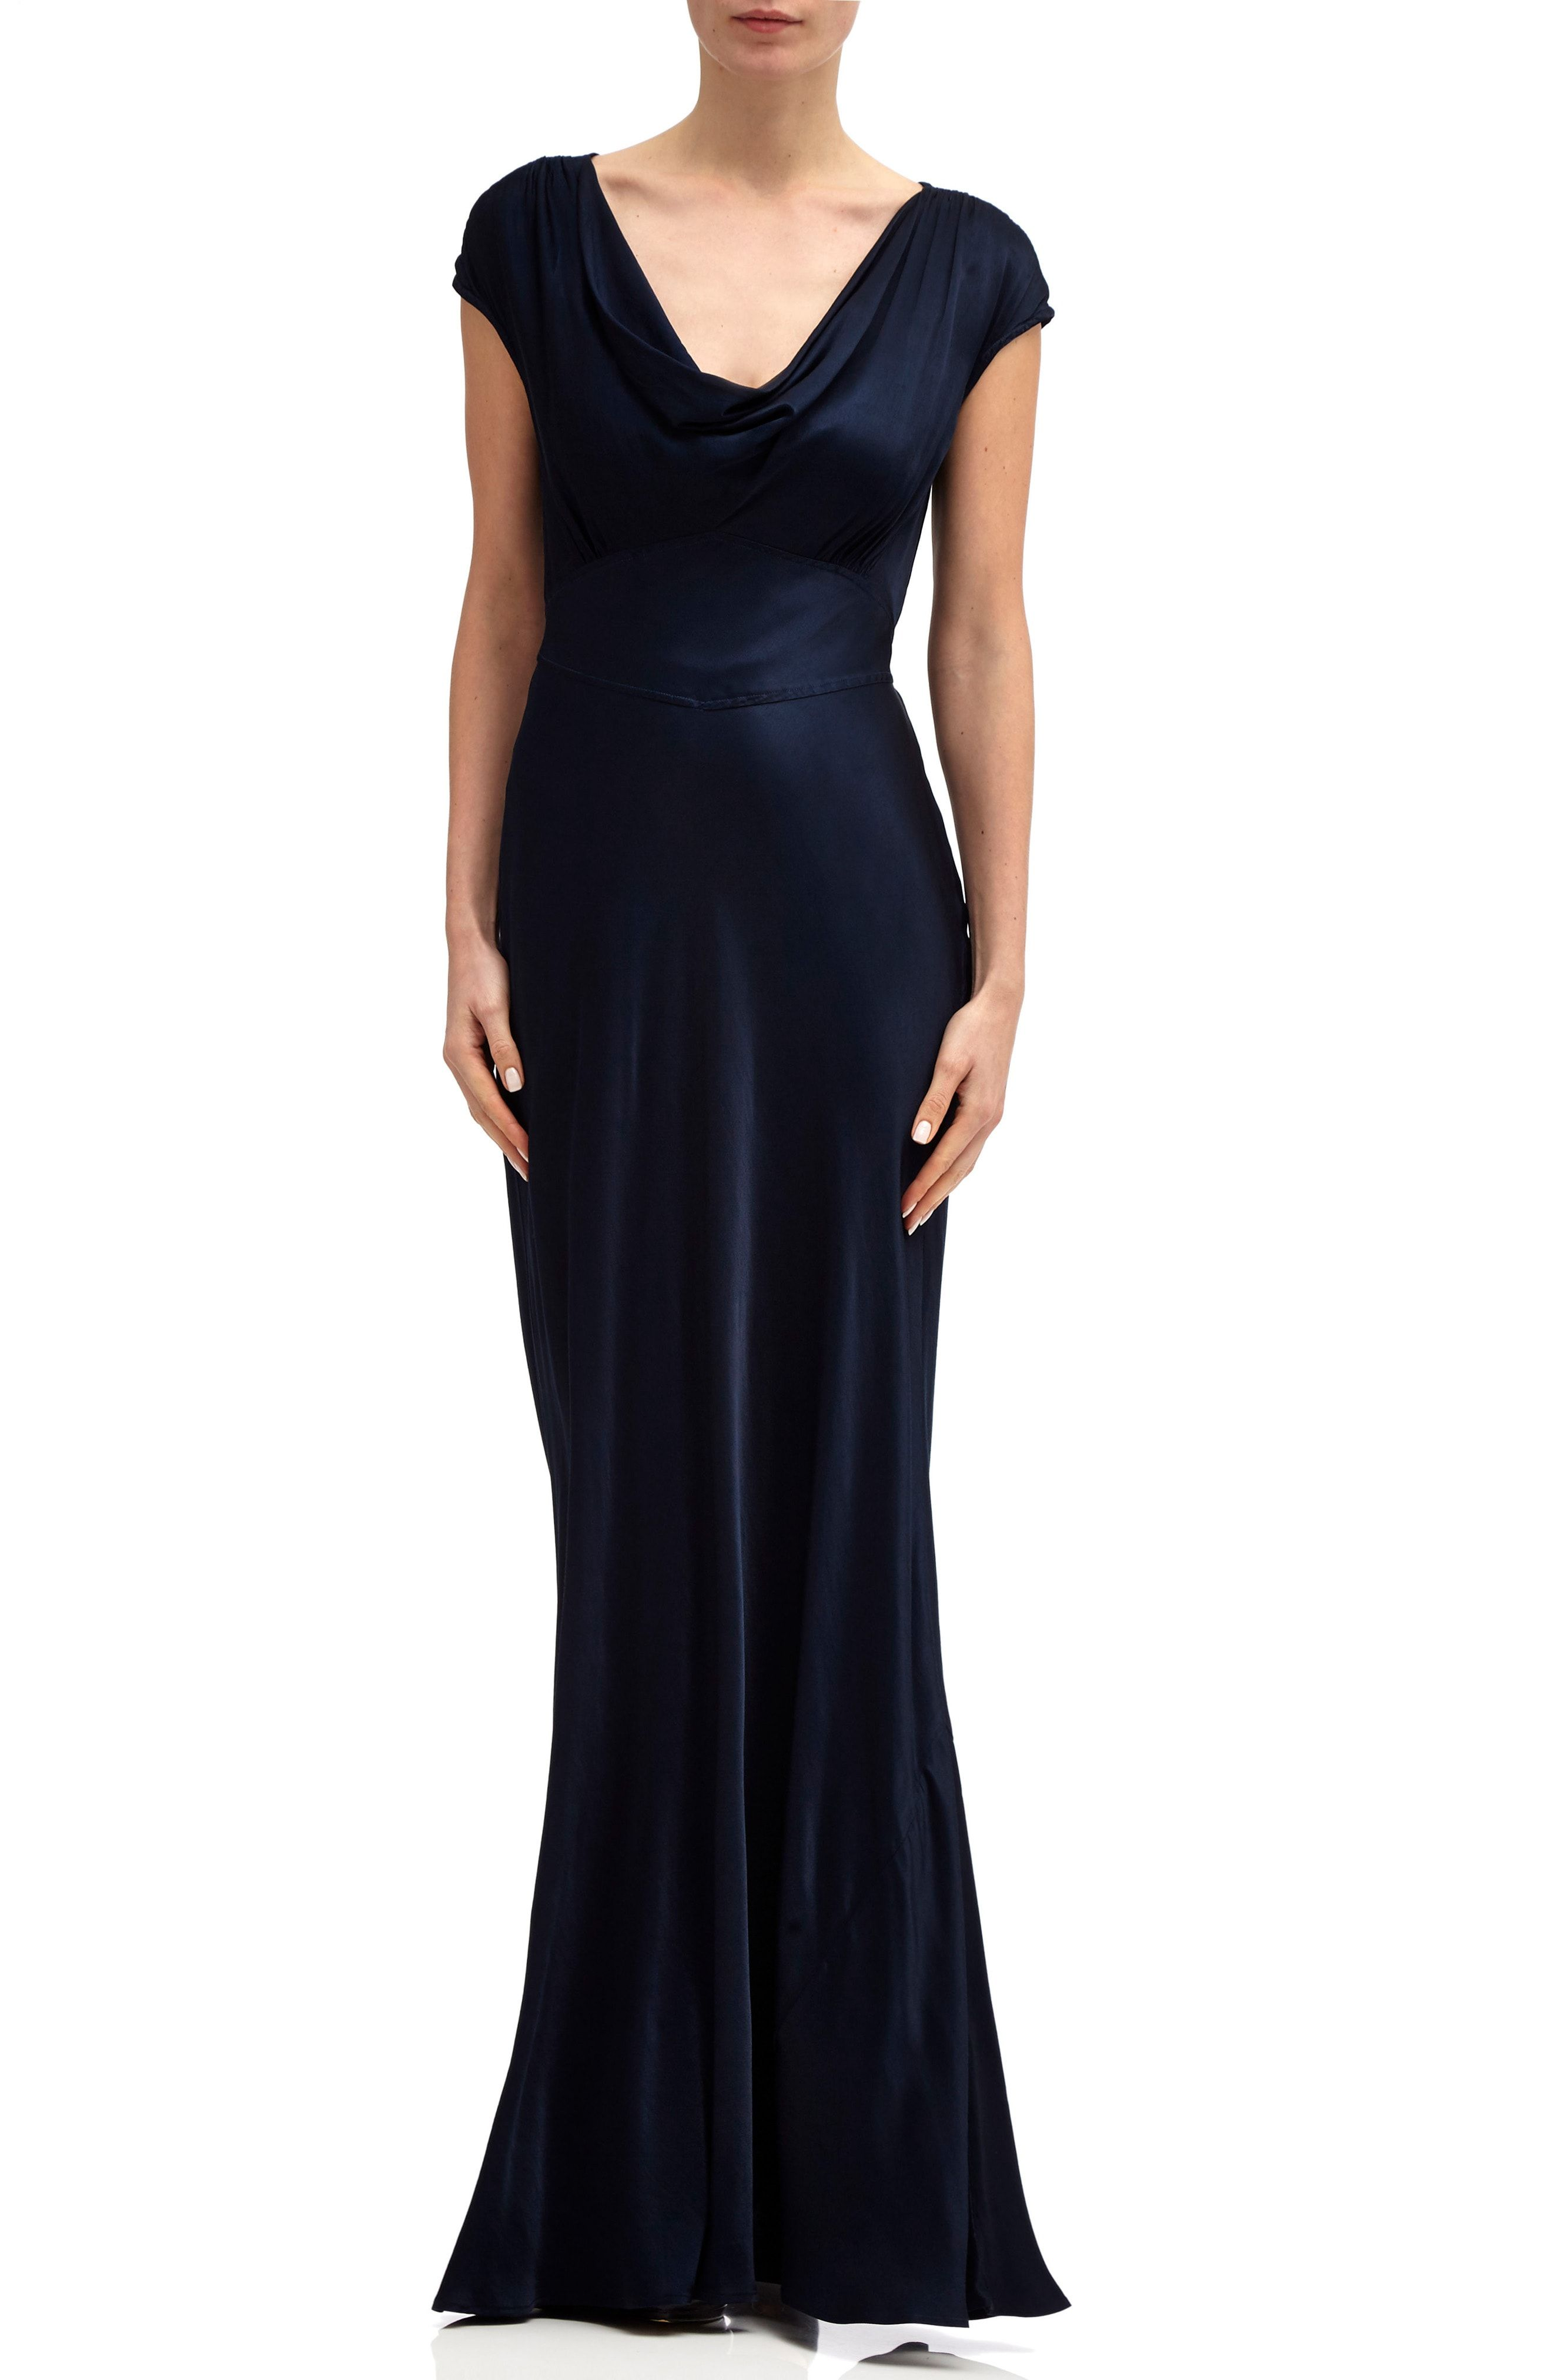 clearance prices dirt cheap how to buy Vintage Inspired Evening Dresses, Gowns and Formal Wear ...